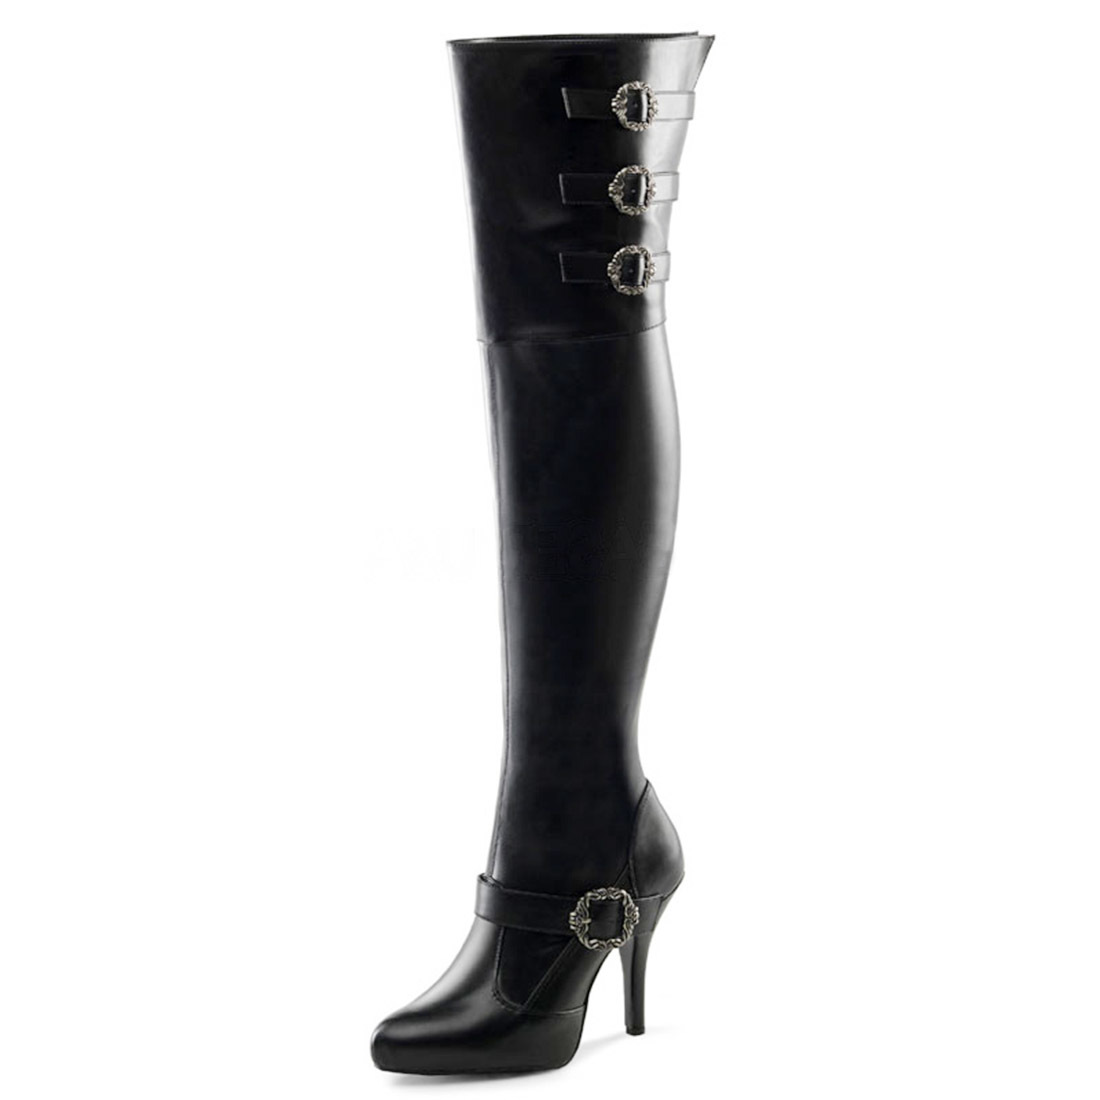 black wide width wide shaft thigh high pirate boots with 5